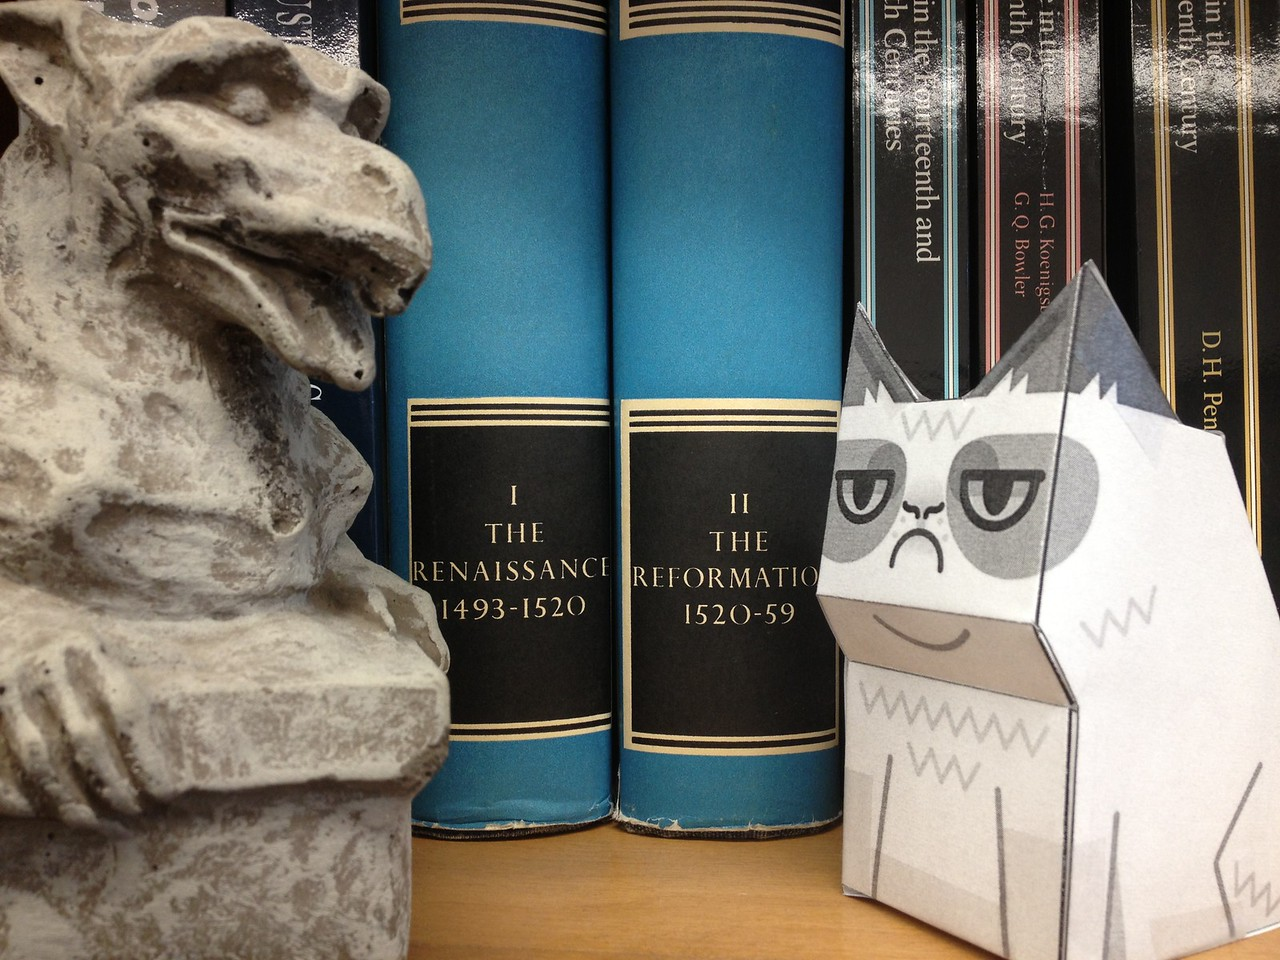 Grumpy Cat and gargoyle are unimpressed by the Renaissance and Reformation